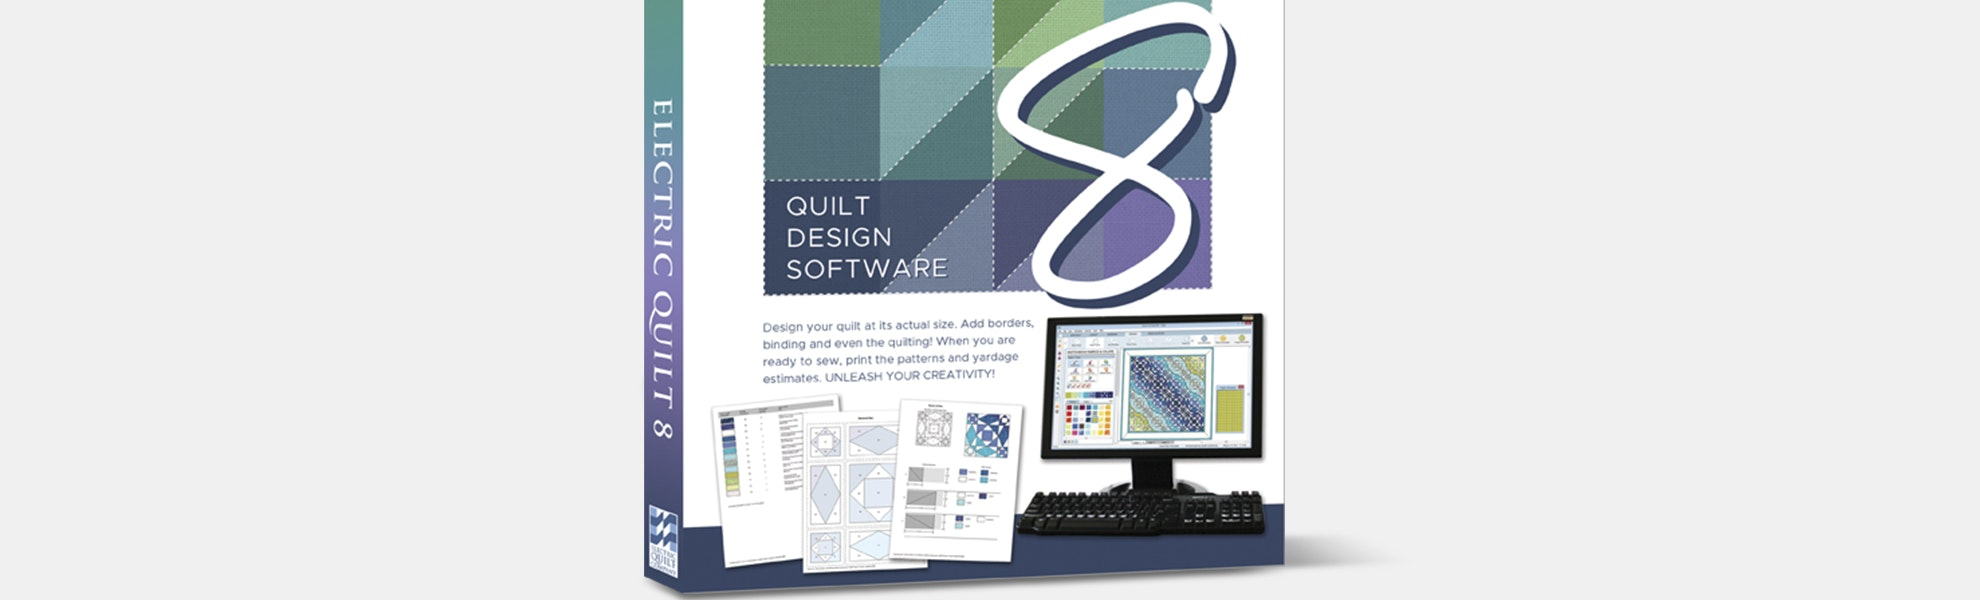 EQ8 Quilting Software